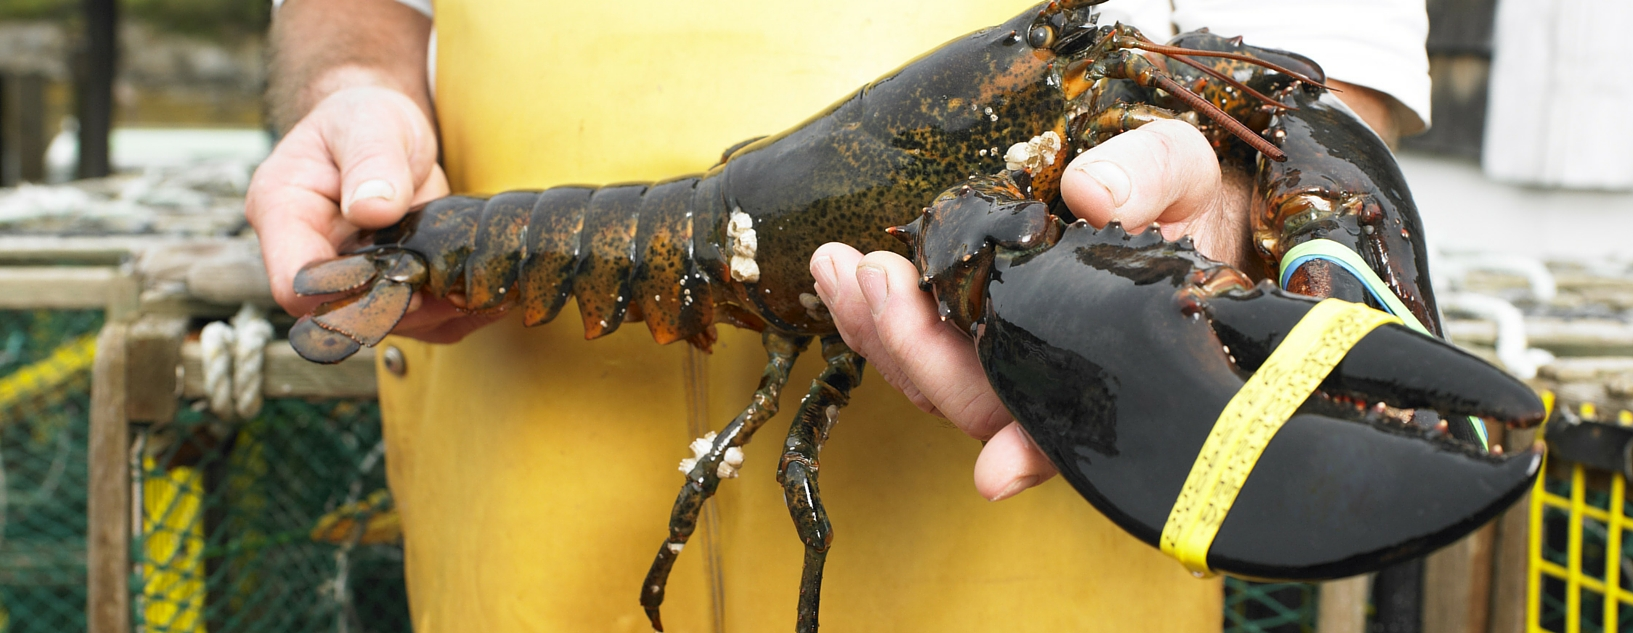 Leader in live lobster